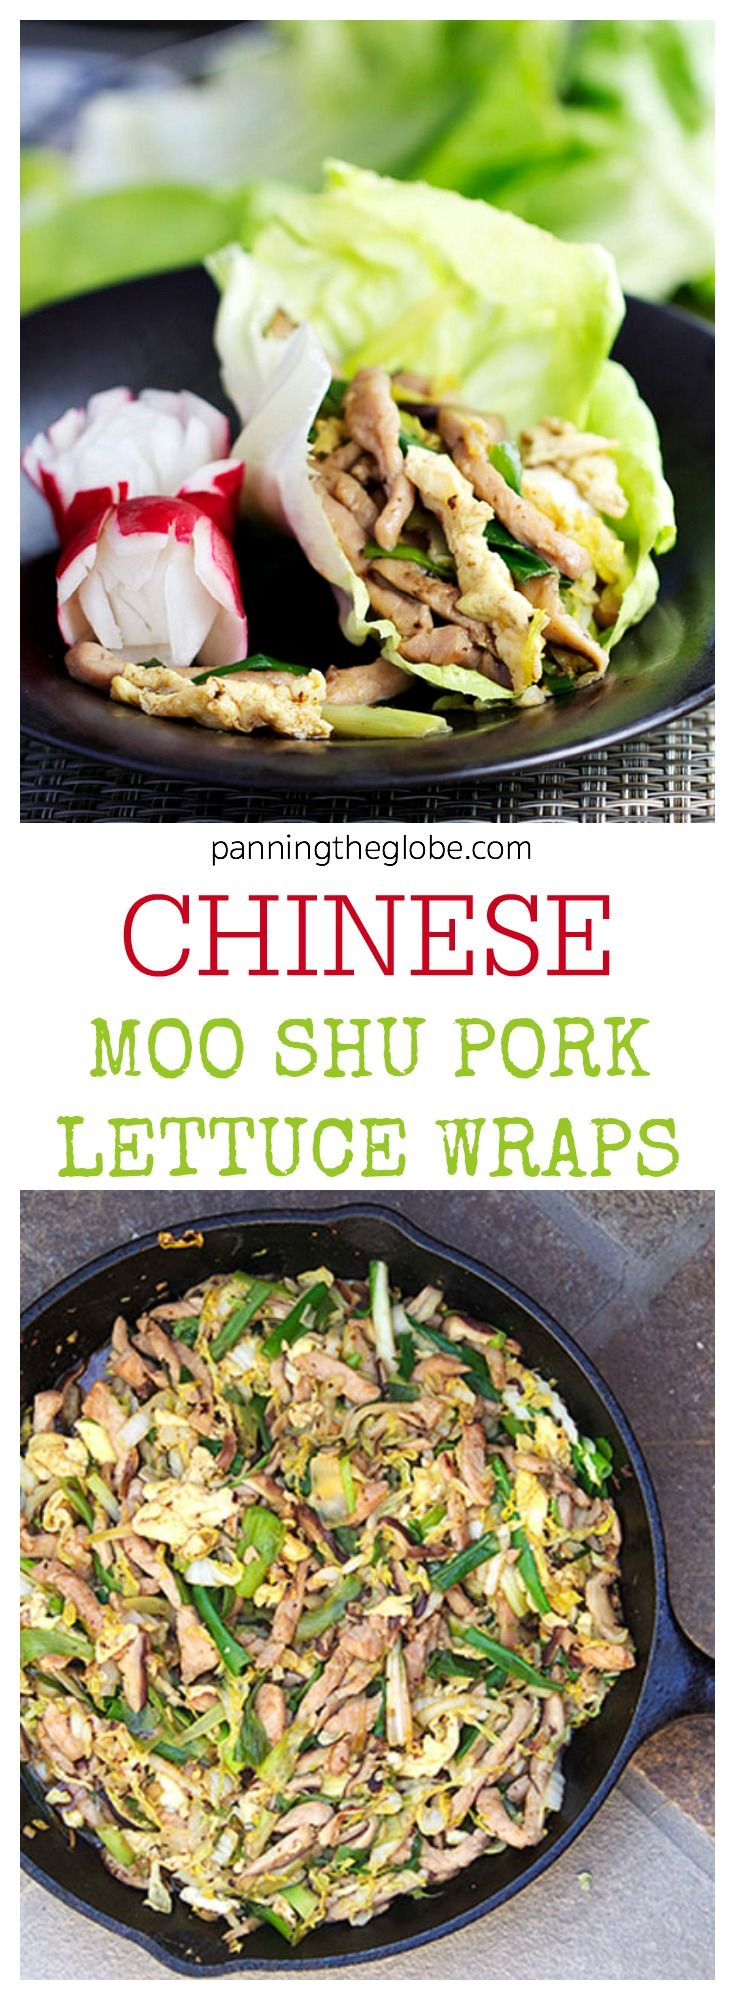 A healthy flavorful Chinese stir-fry of pork, cabbage, mushrooms and eggs, wrapped up in bibb lettuce leaves • Panning The Globe